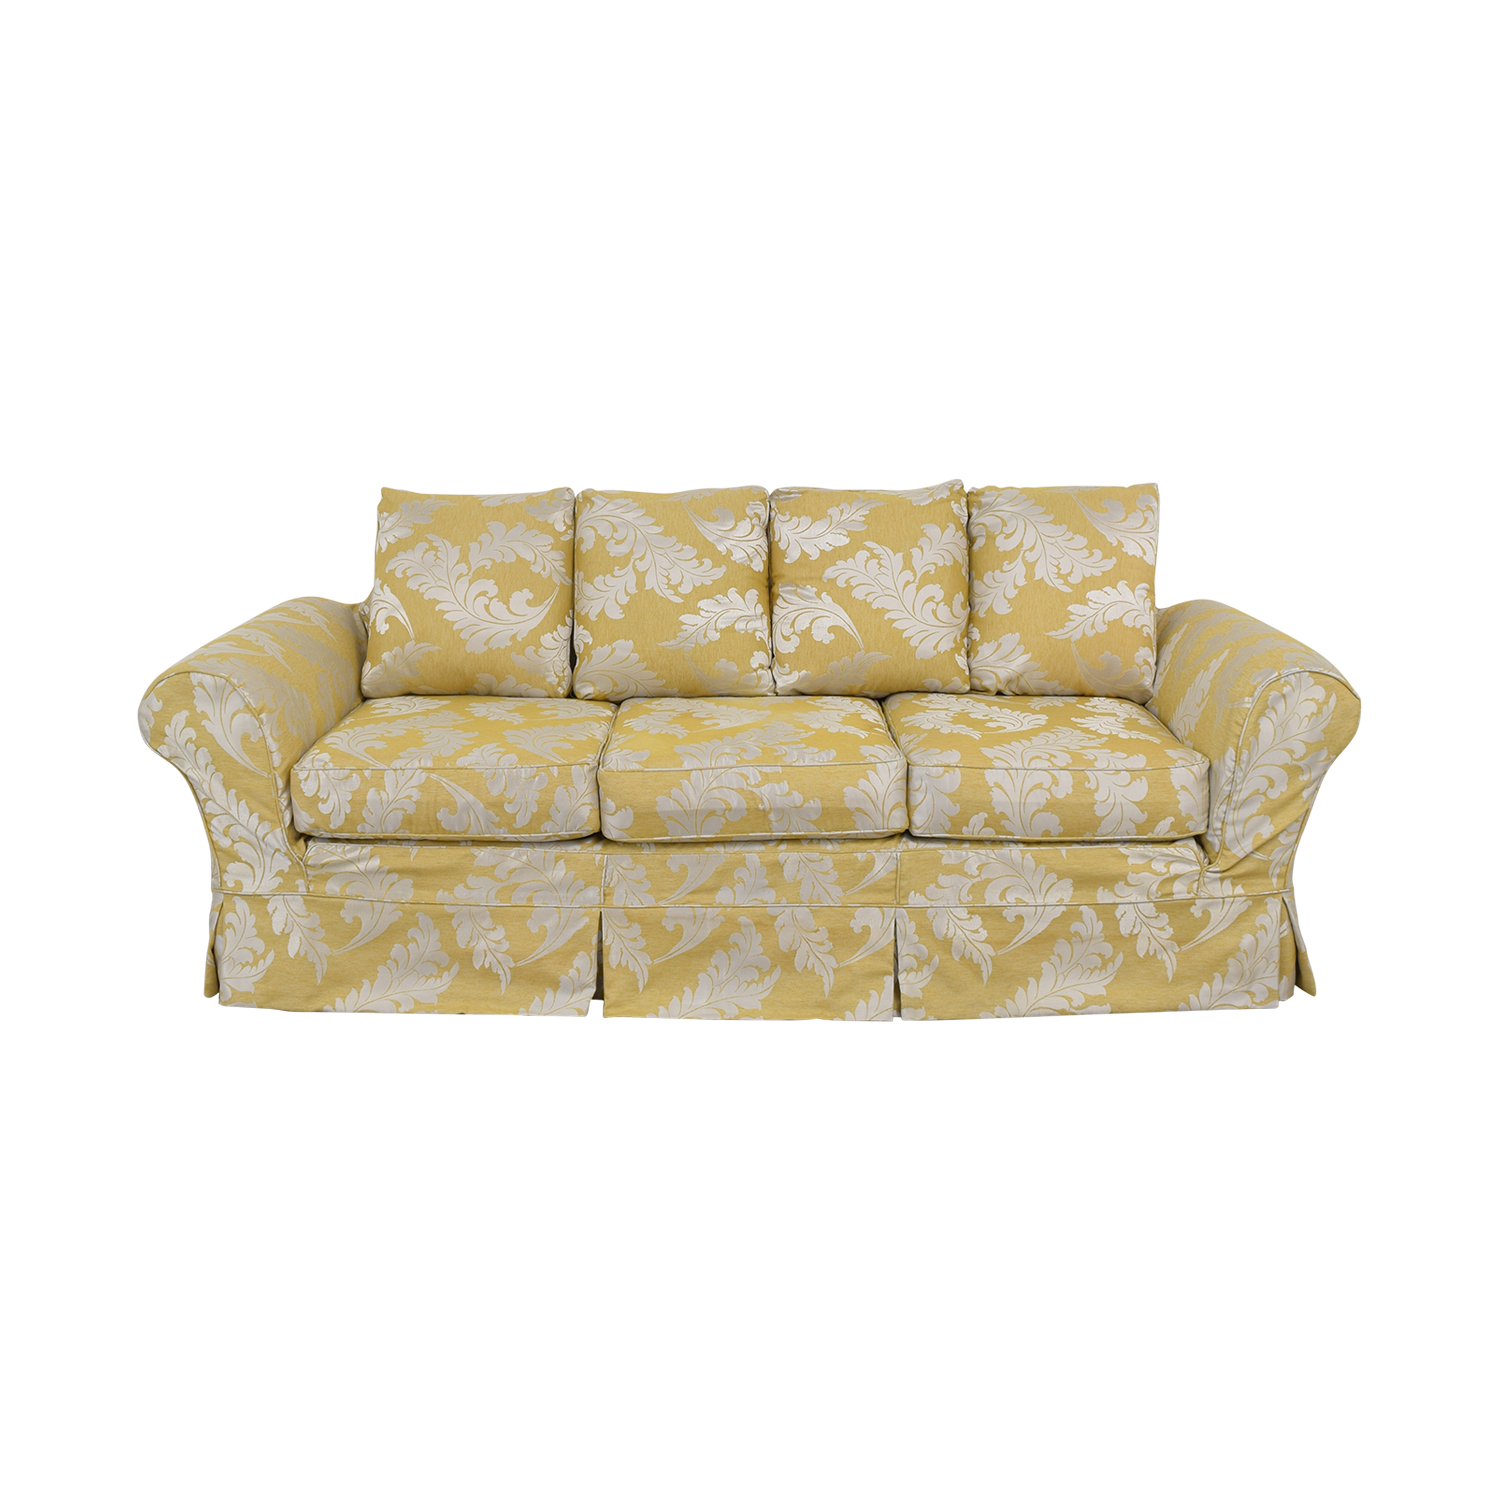 buy Ethan Allen Three Cushion Sofa Ethan Allen Classic Sofas